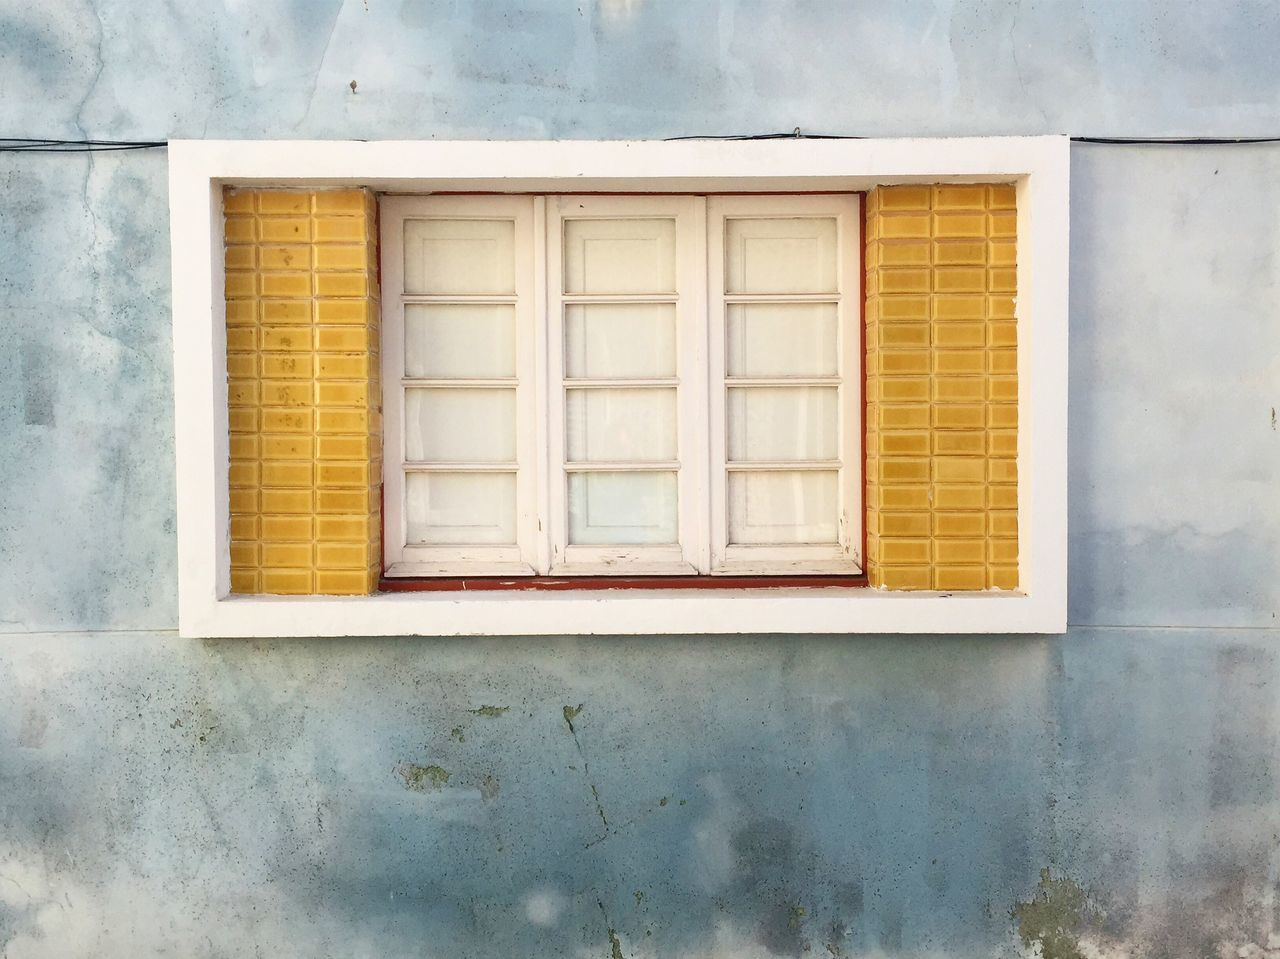 Symmetry Symetry Window Closed Window  Tiles Tilesphotography Architecture Built Structure House Yellow Building Exterior Architecture No People Wall Wallporn